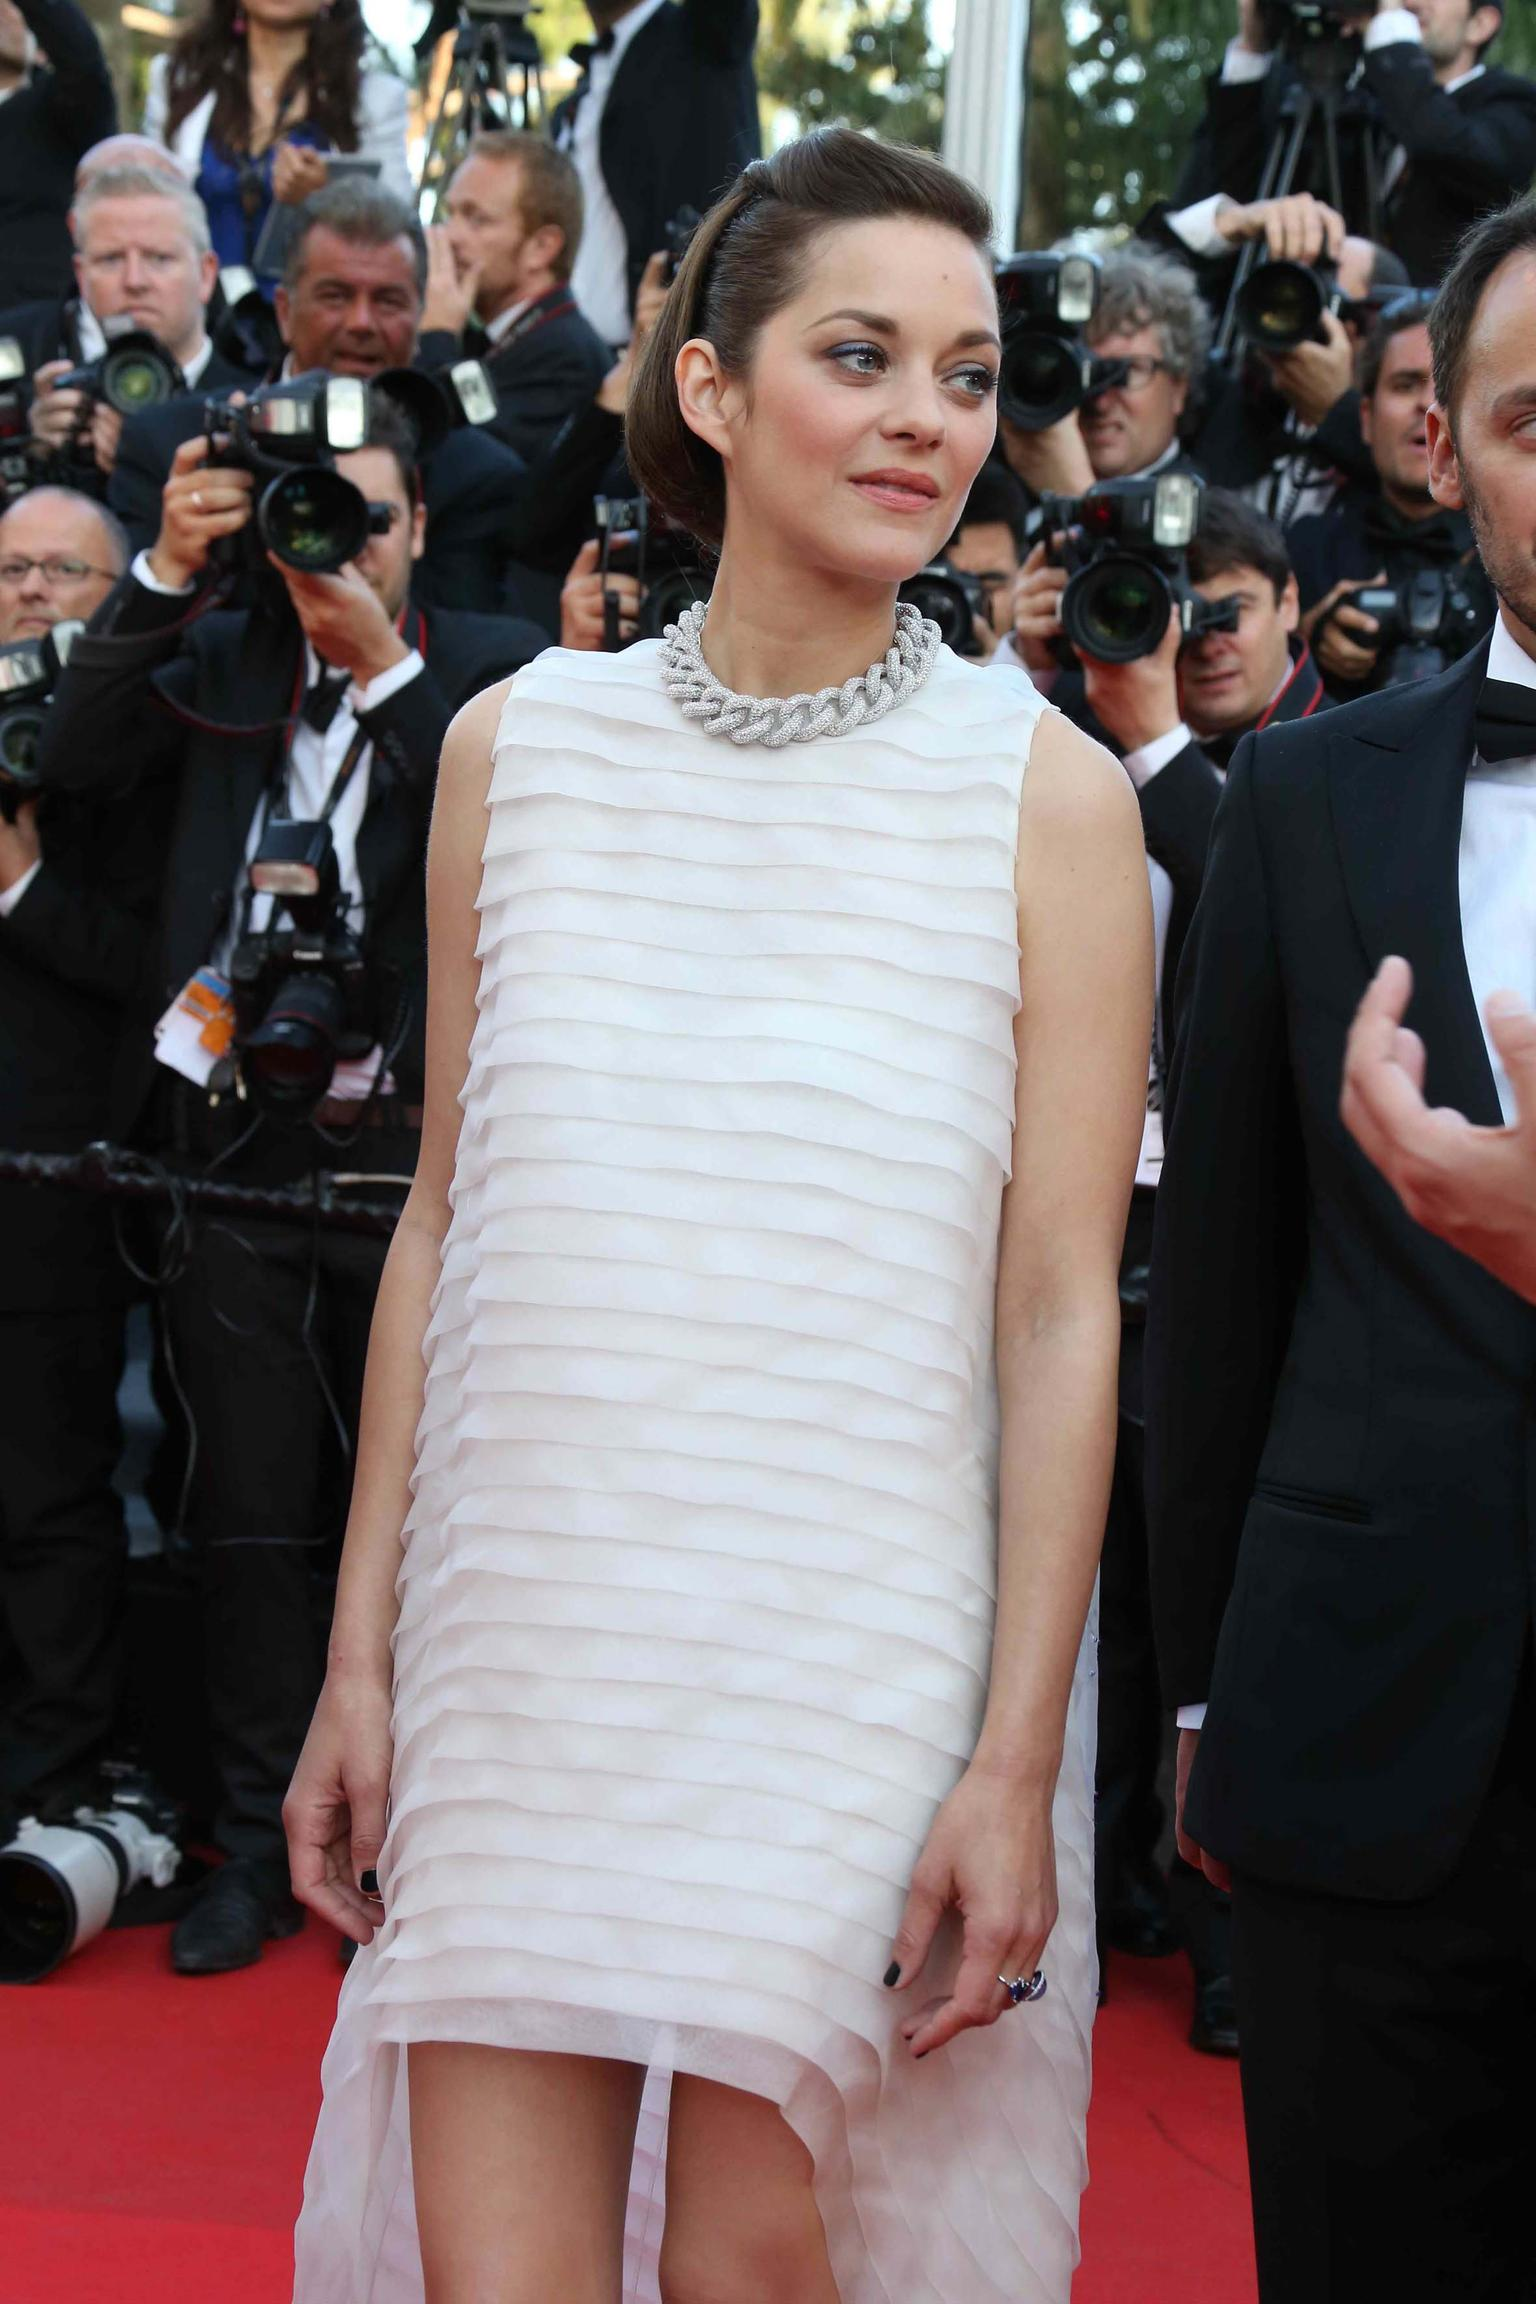 Marion Cotillard chose a white diamond chain-link necklace, a cabochon-cut chalcedony ring and a sapphire ring, all by Chopard, for the premiere of Two Days, One Night at the Cannes Film Festival 2014.